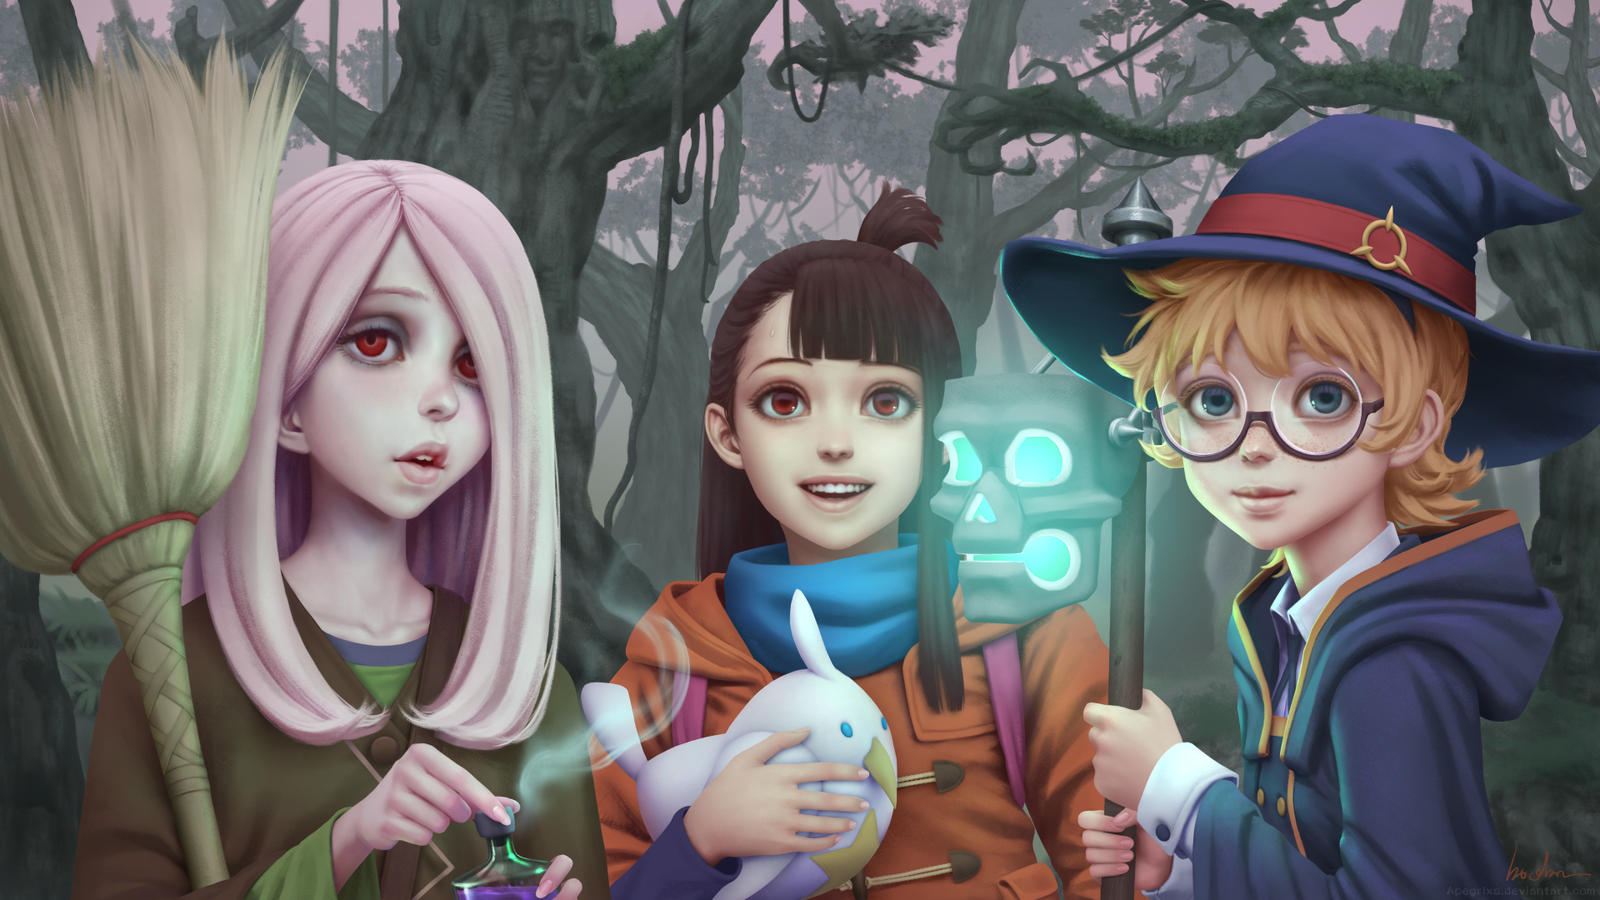 Little Witch Academia Fanart By Apegrixs On Deviantart